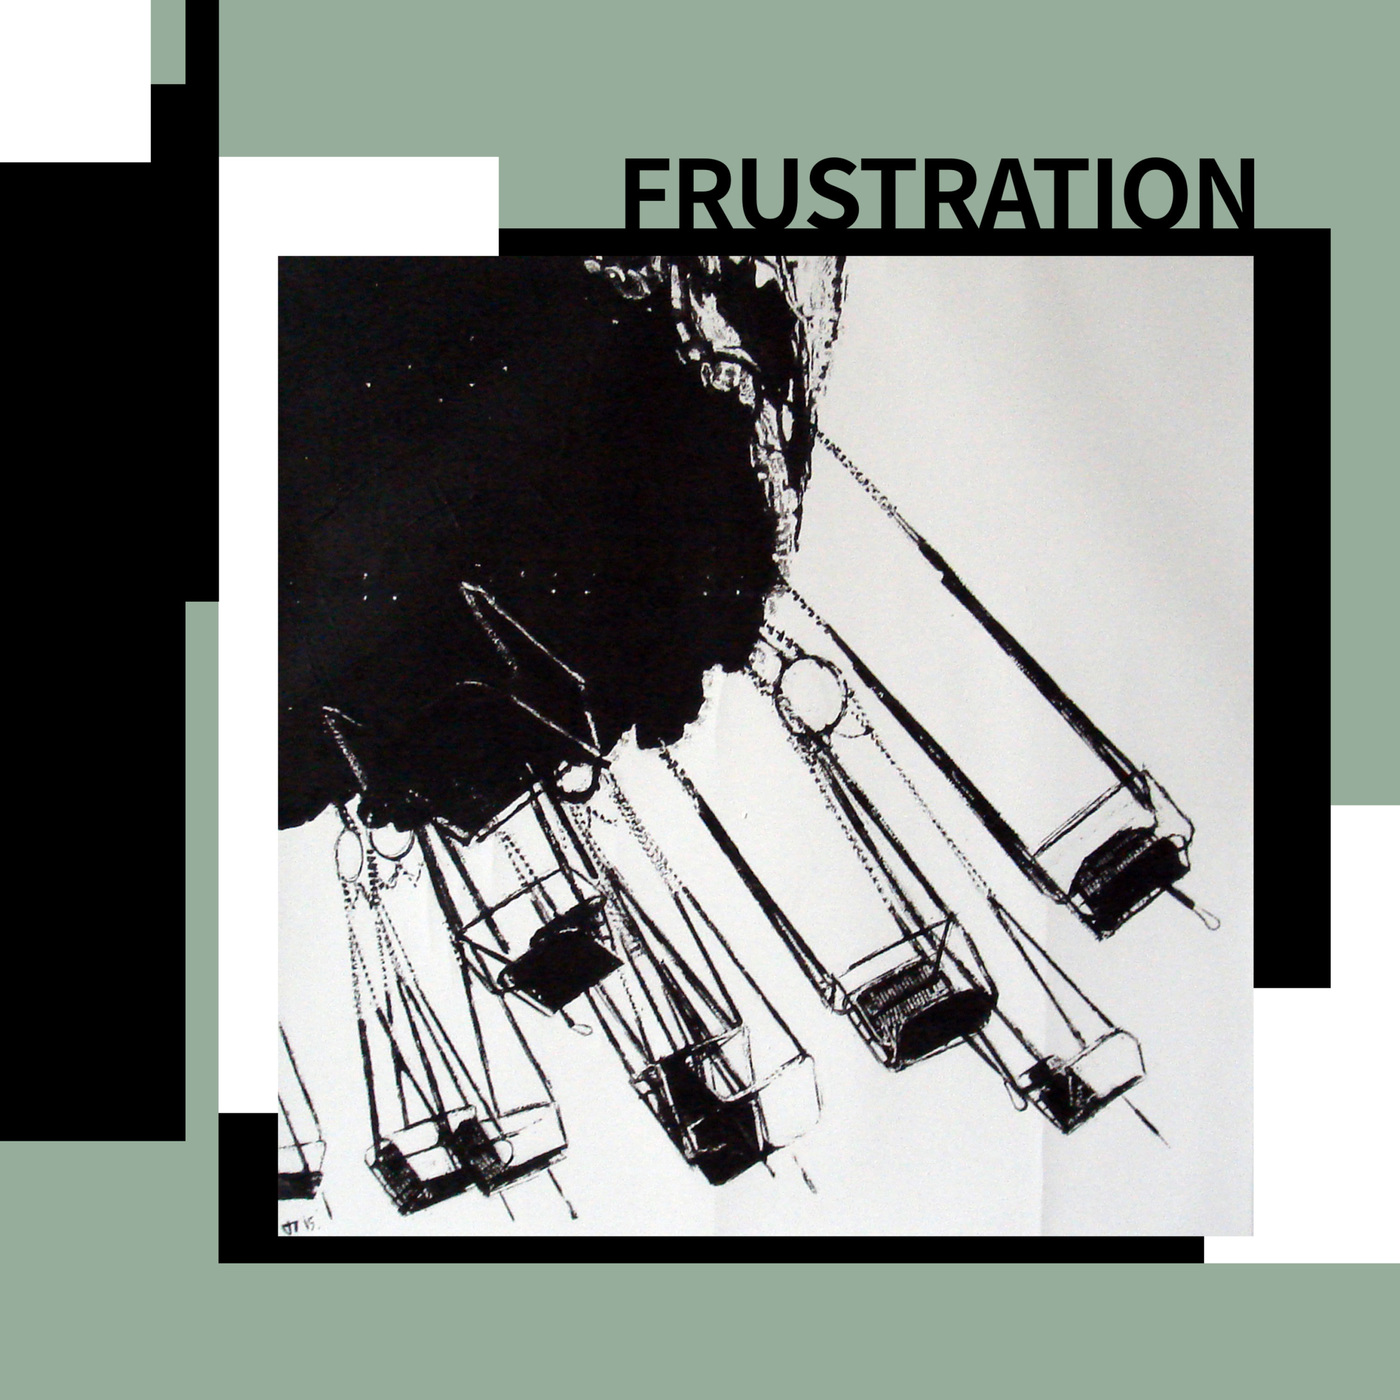 Frustration - Electric Heat